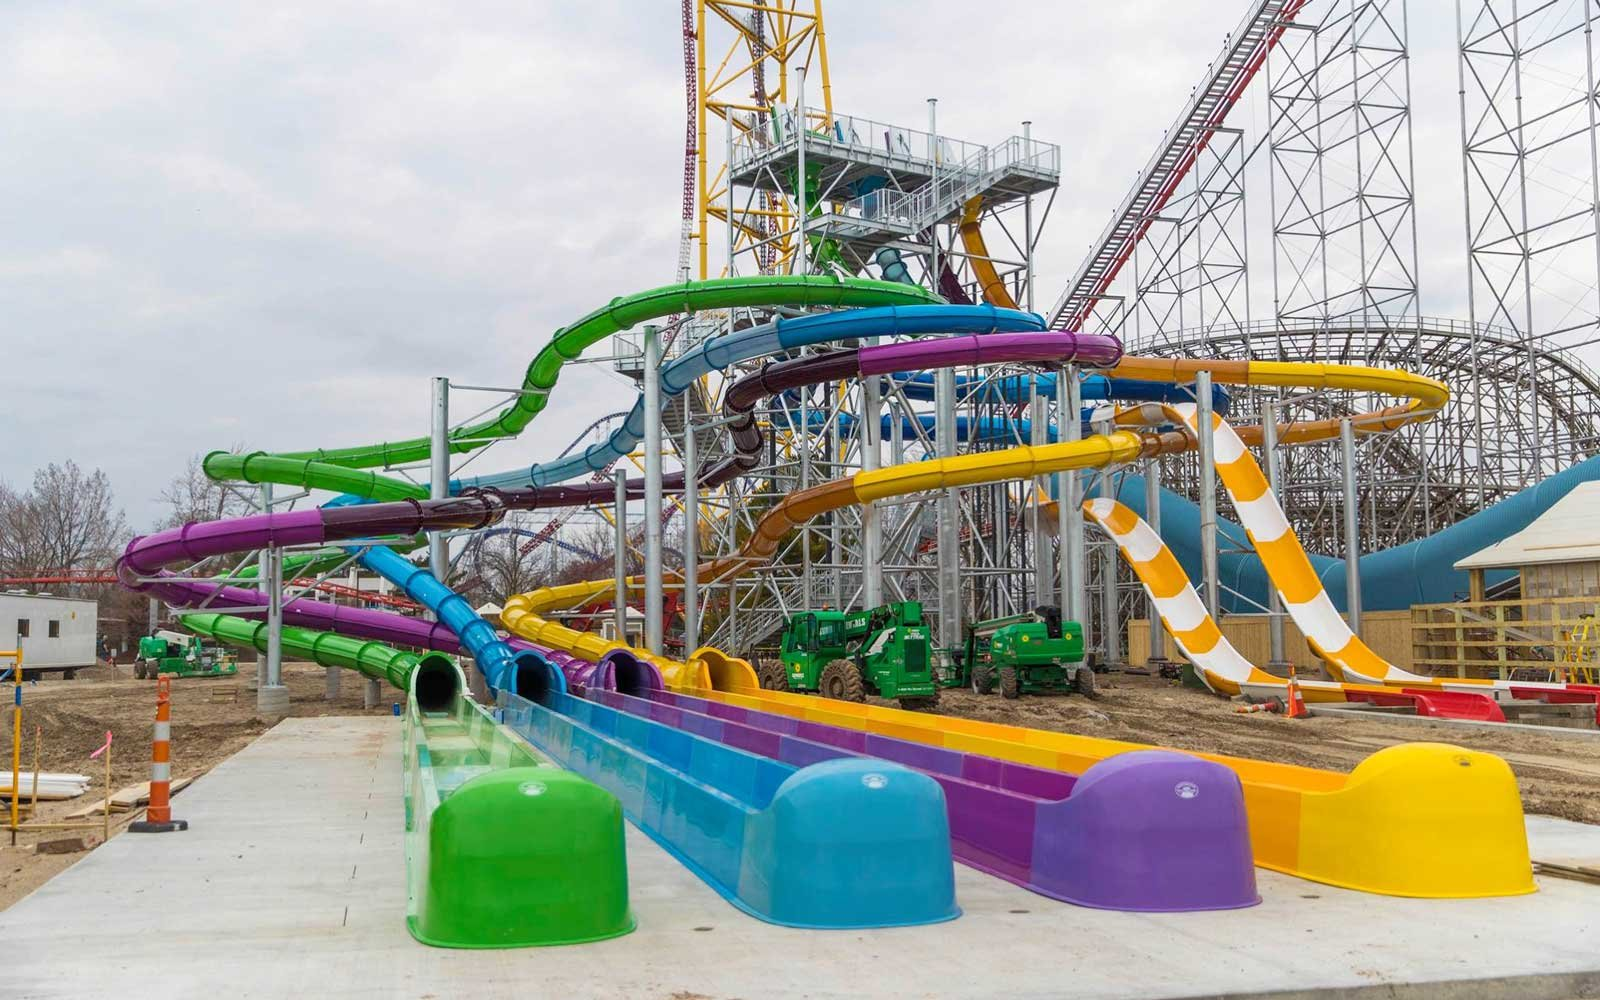 Point Plummet — Cedar Point Shores, Ohio